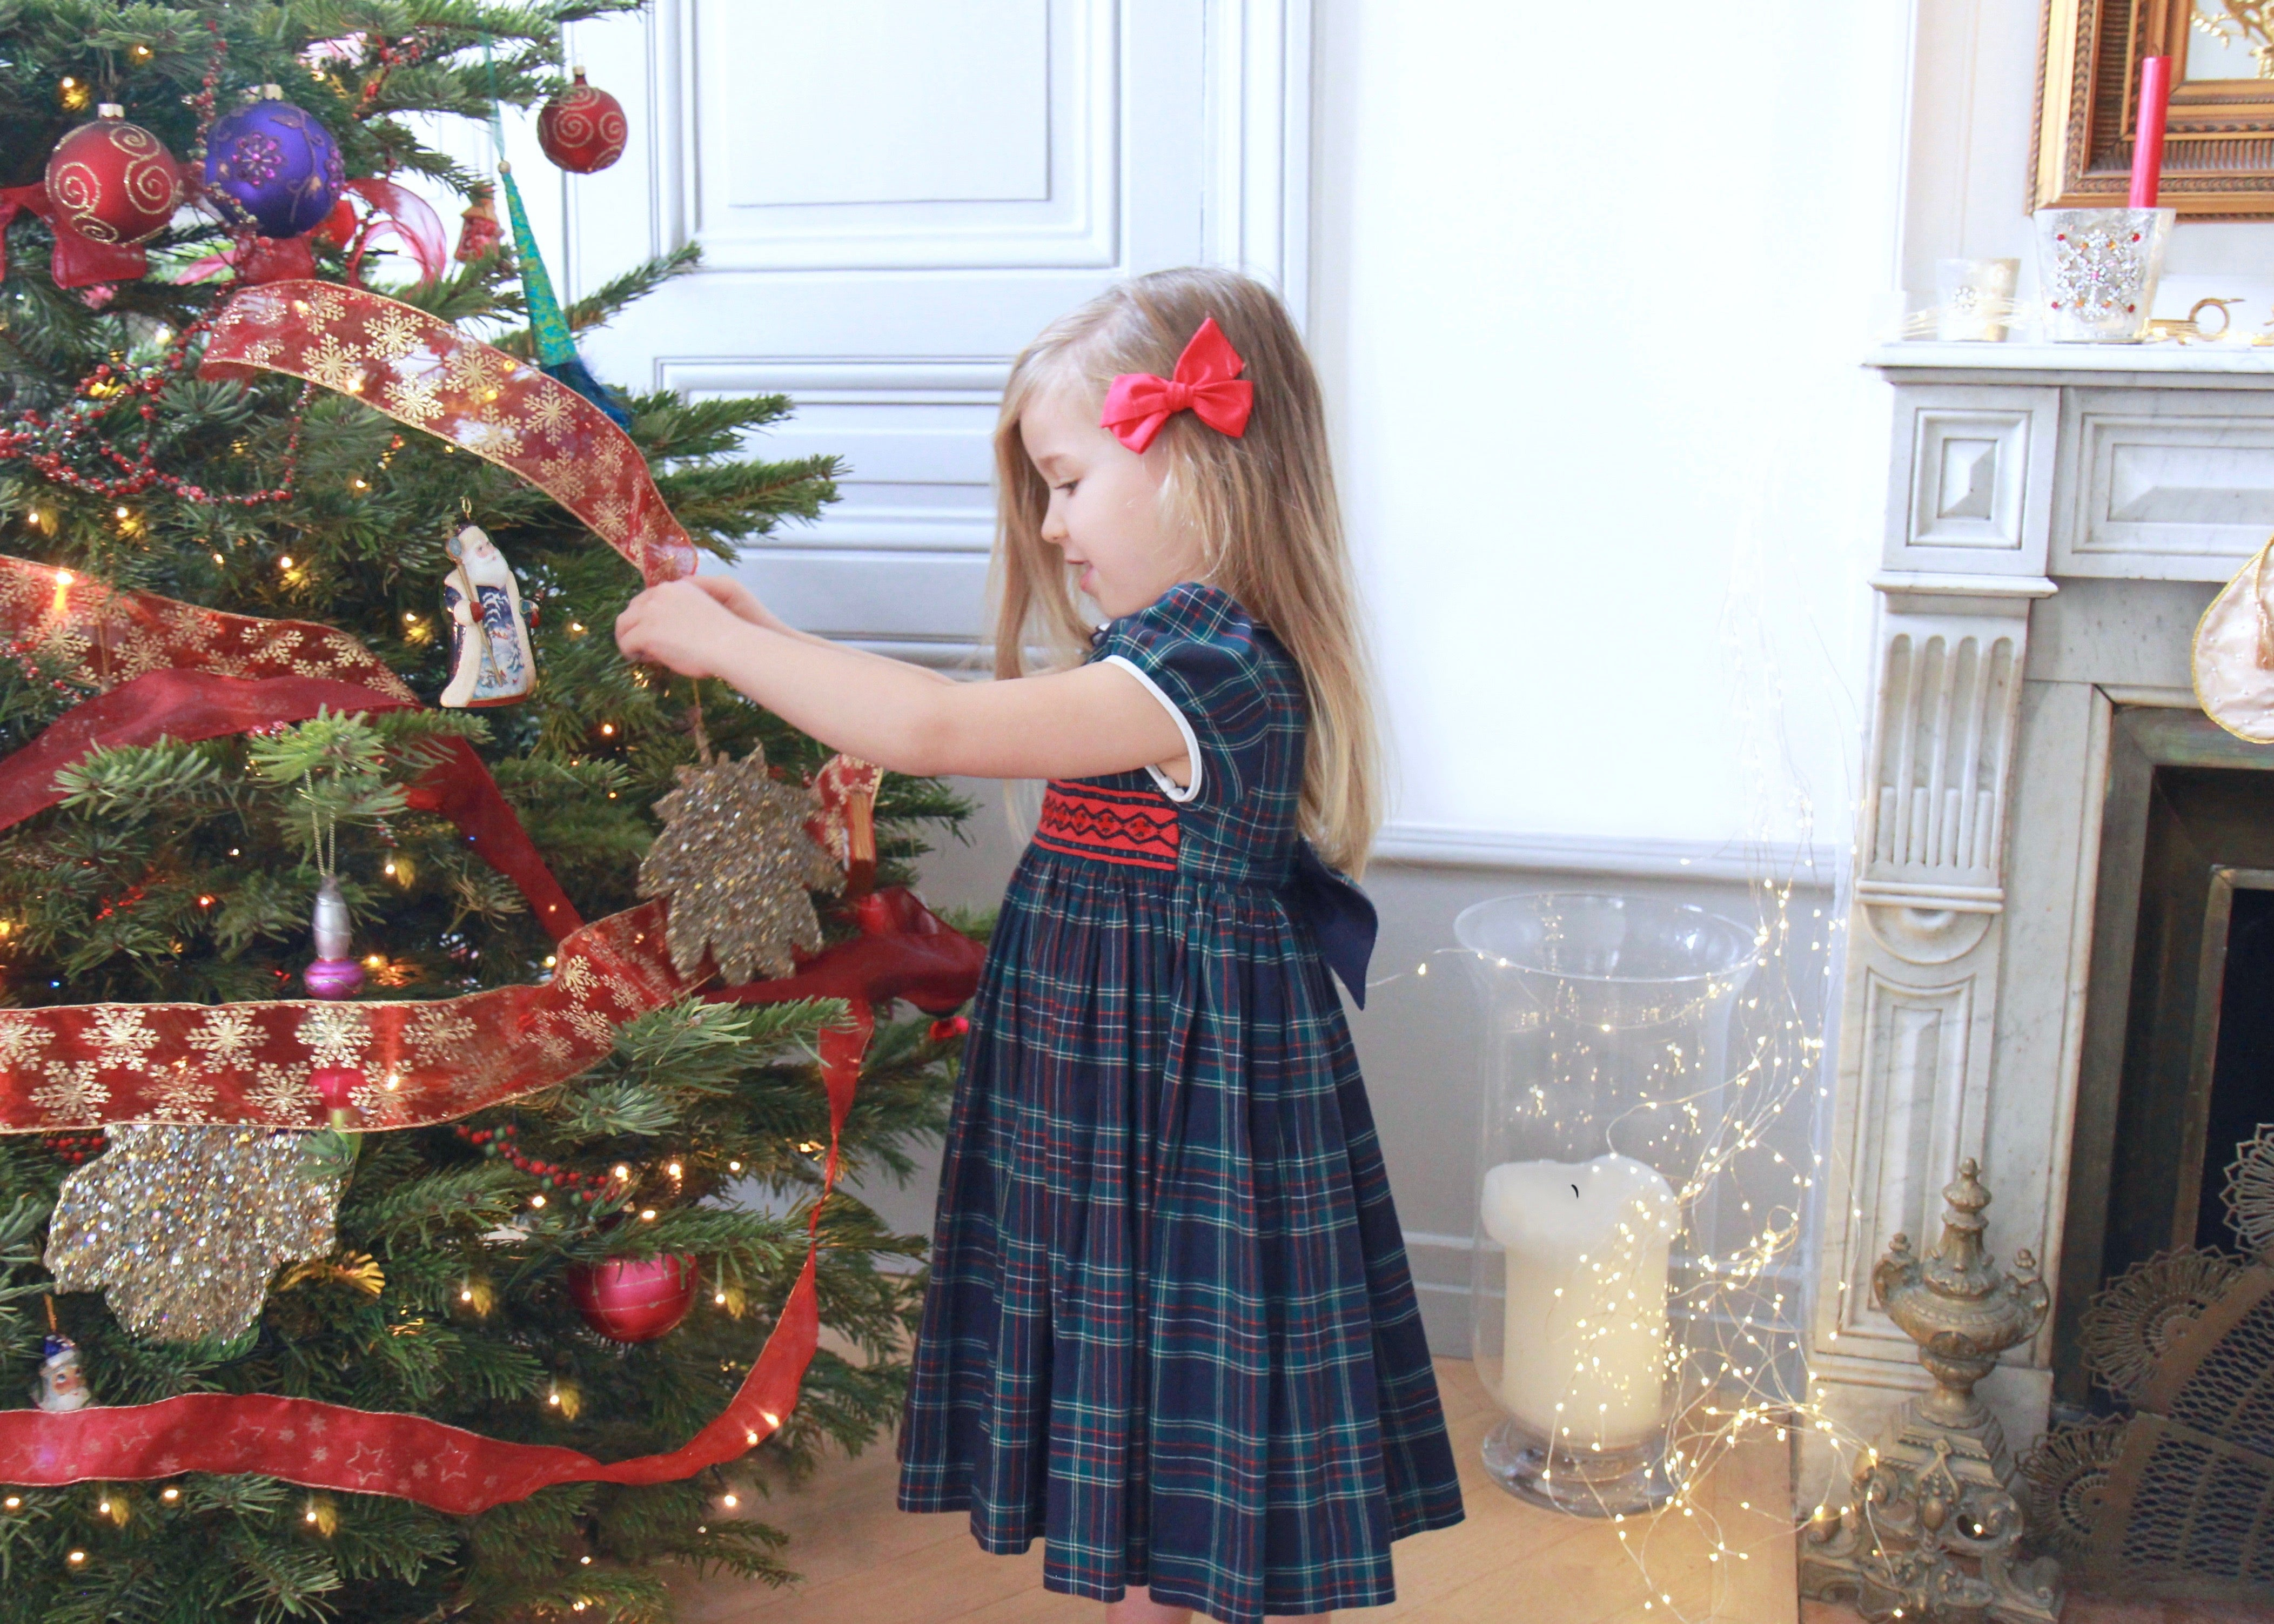 Charlotte sy Dimby's count down to Christmas, inspiring family ideas during Advent - Smocked dresses